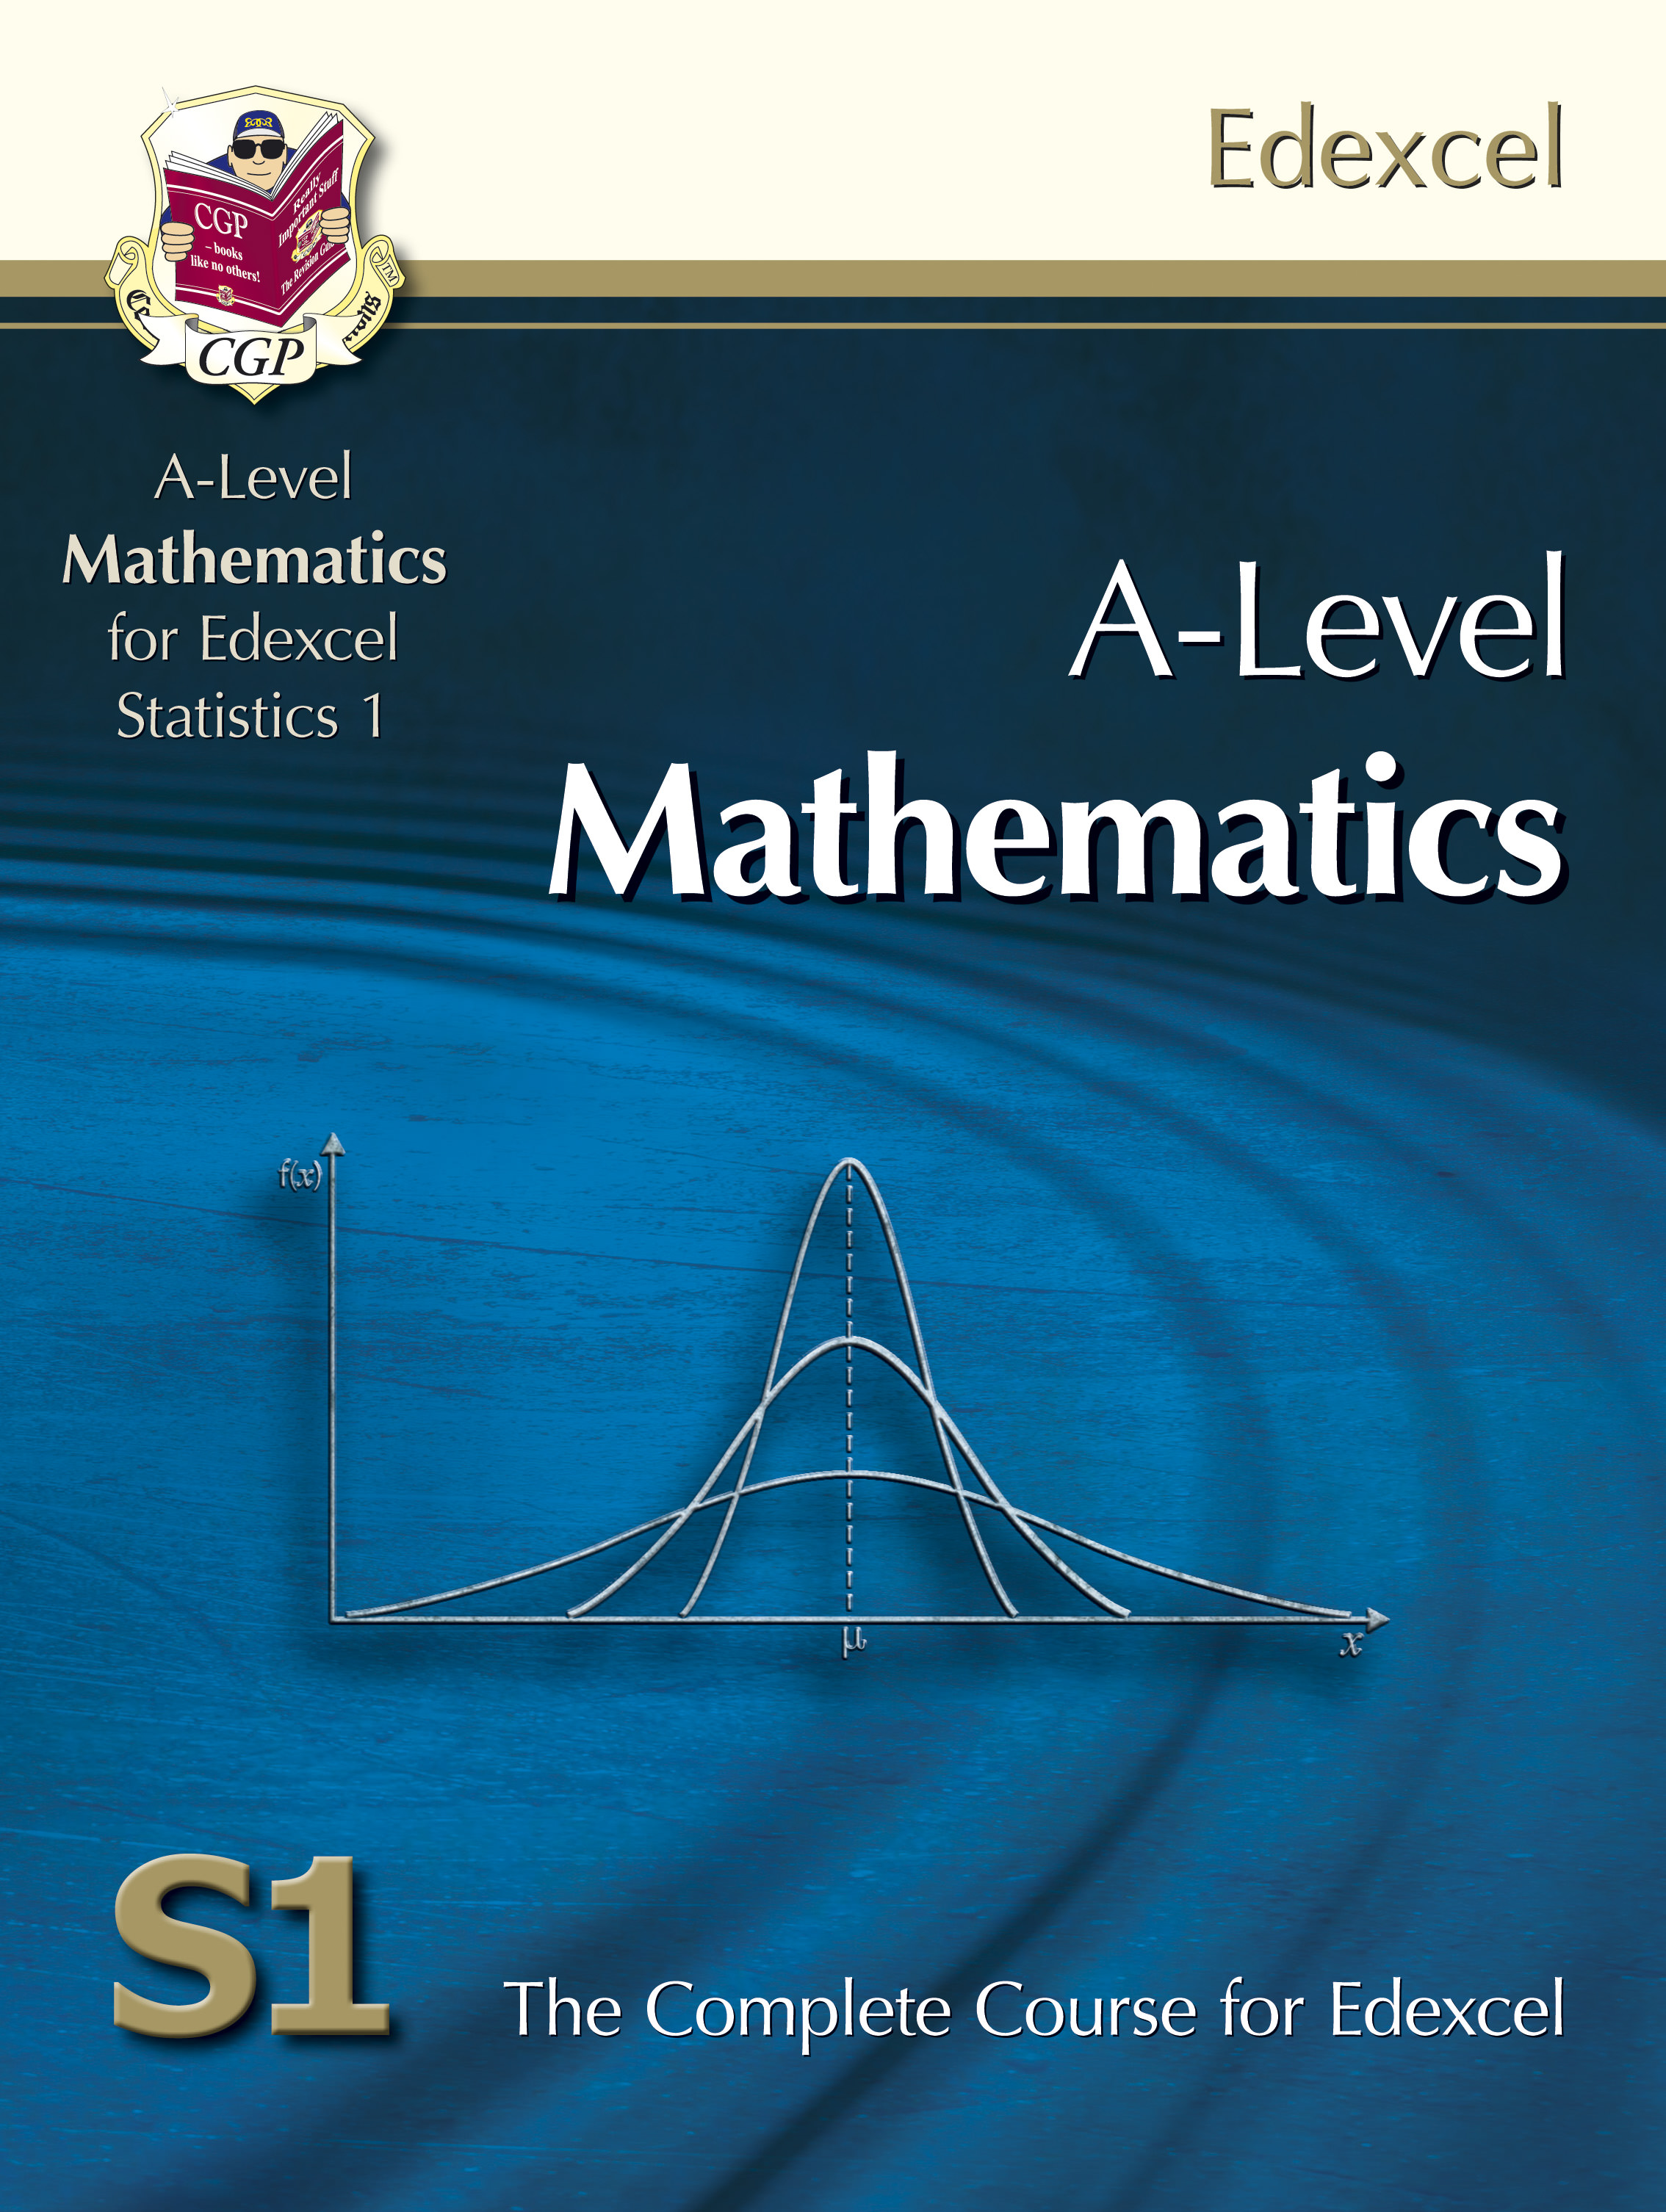 MES1T51DK - A-Level Maths for Edexcel - Statistics 1: Student Book